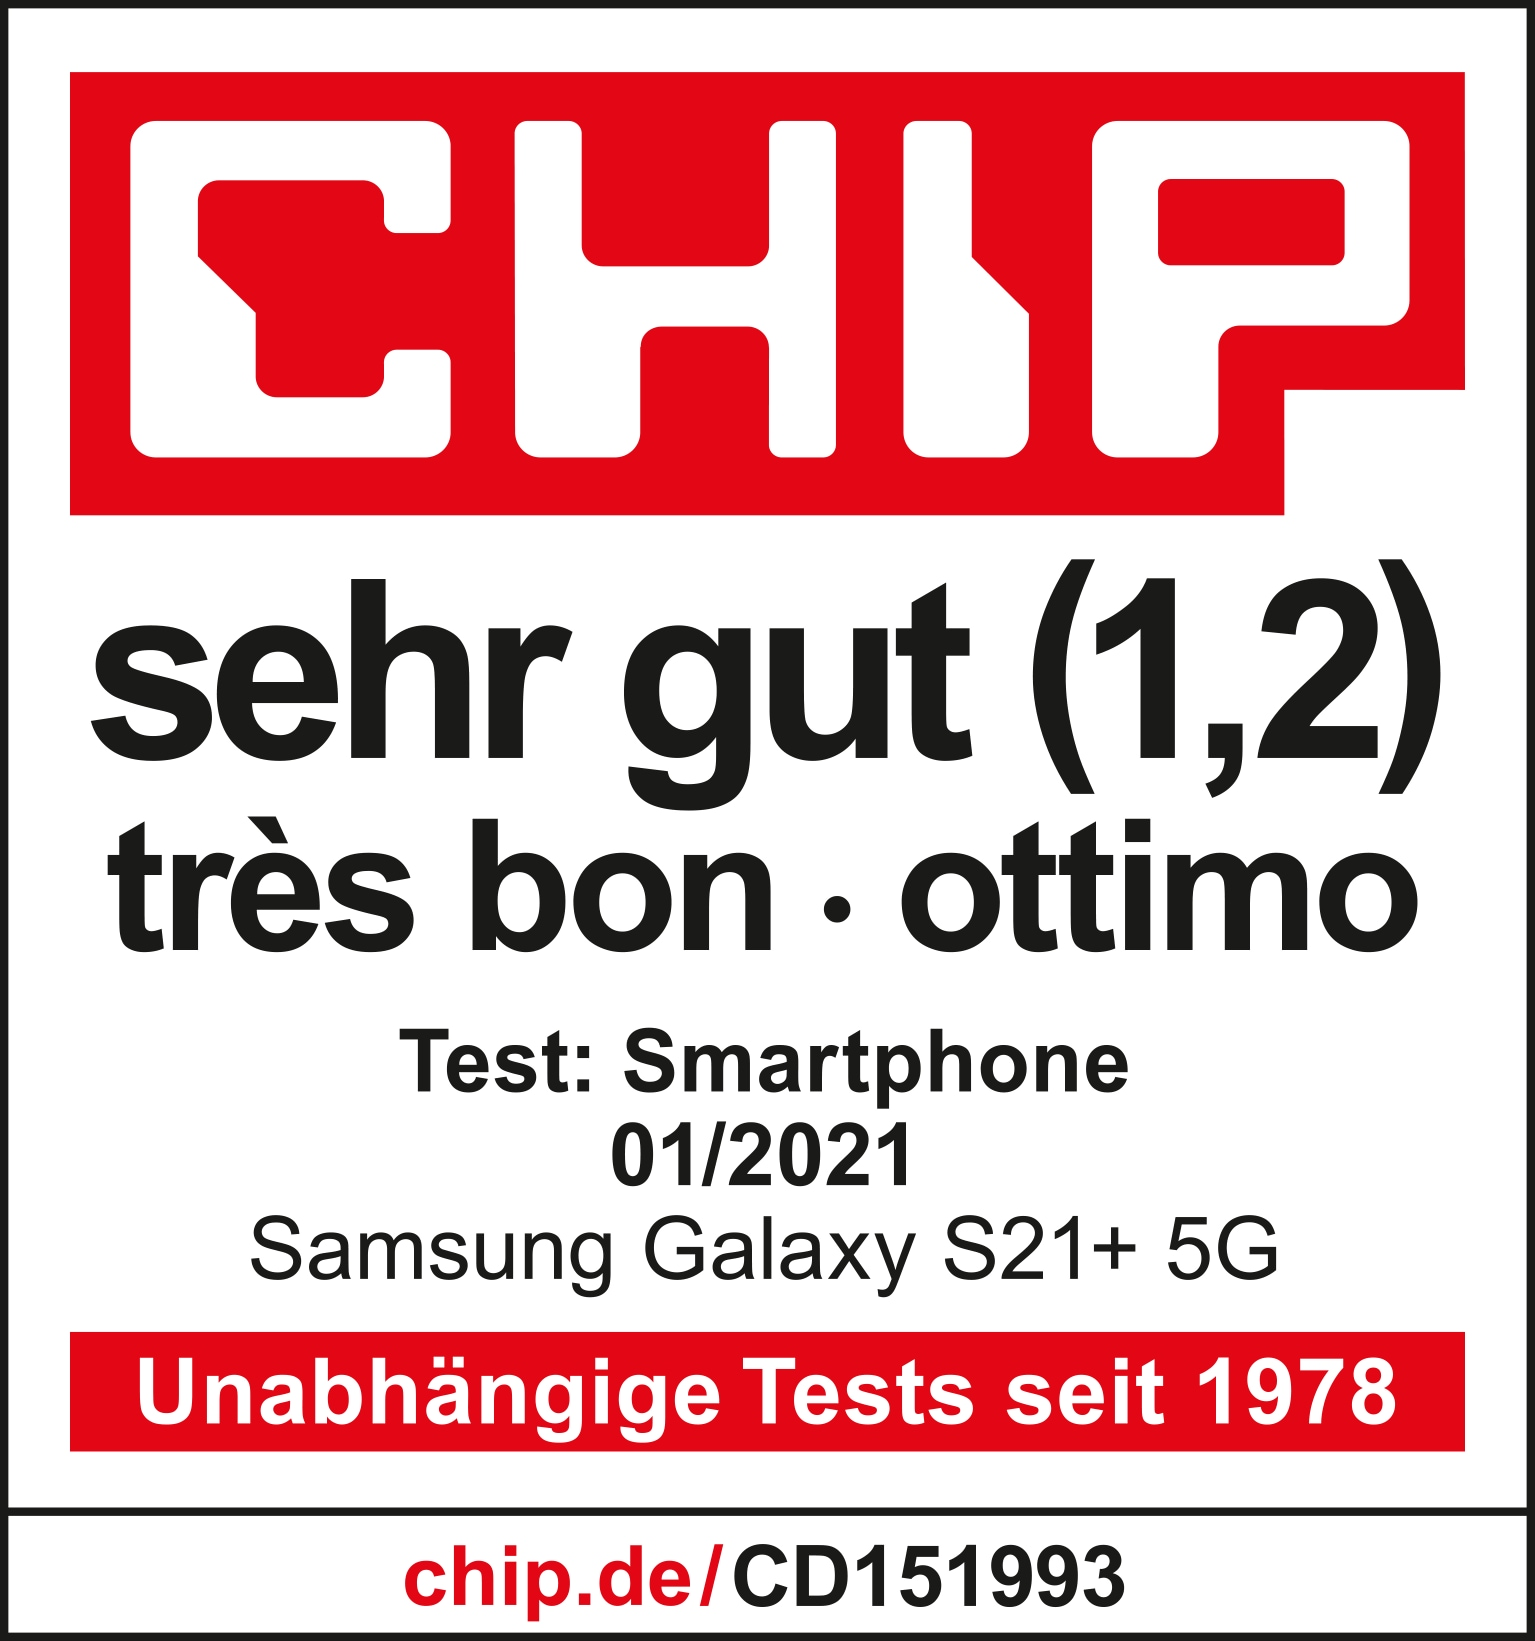 Chip - Très bon (1,2) - Galaxy S21+ 5G